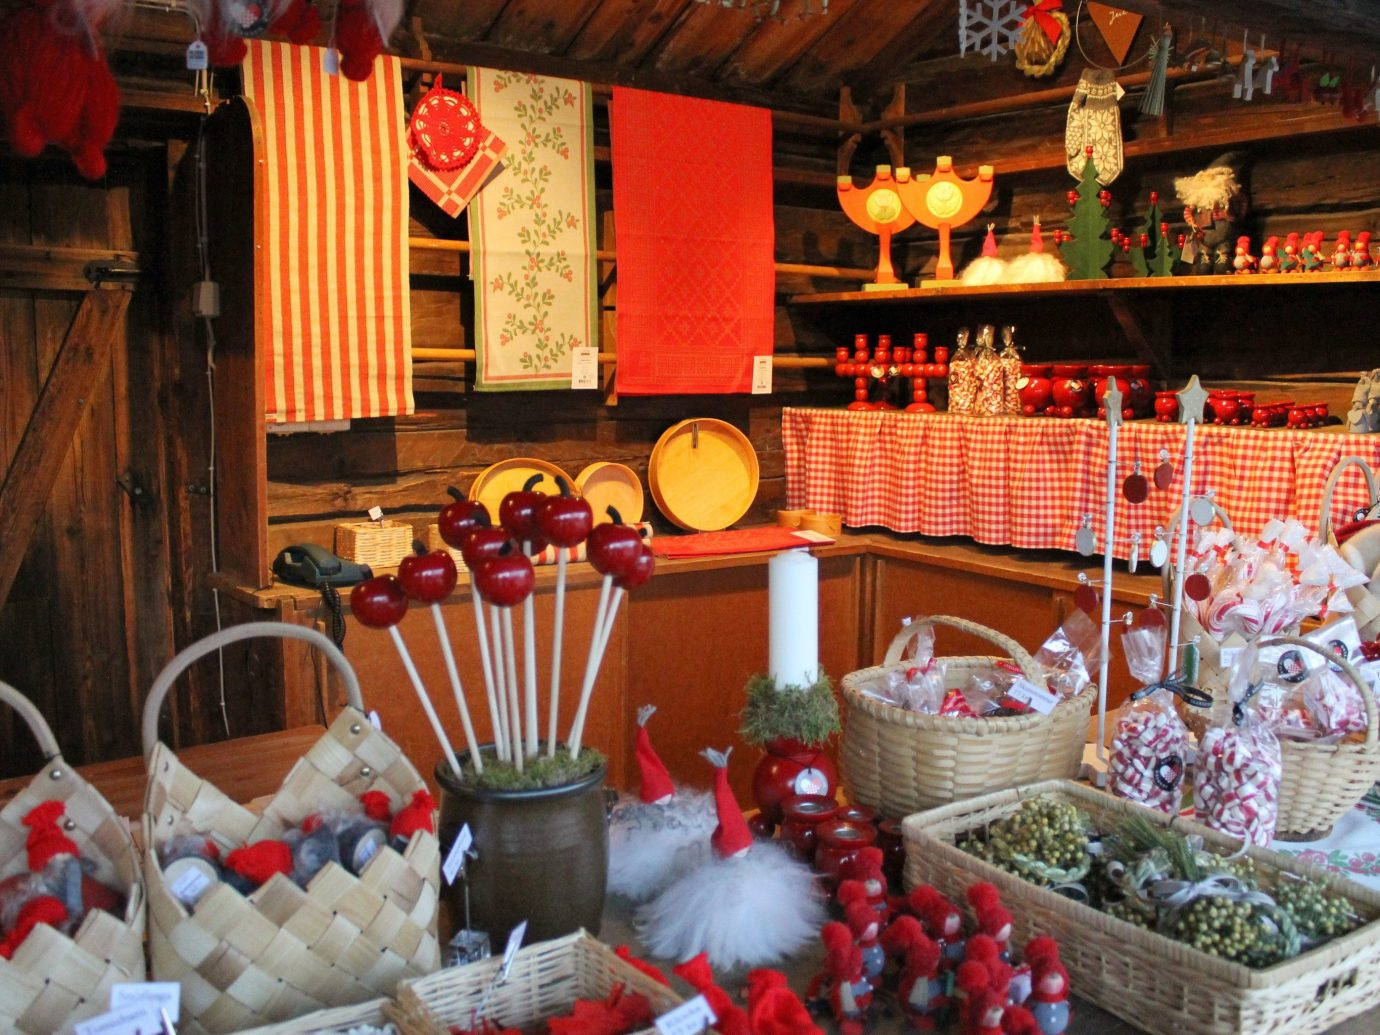 Trip Ideas indoor meal food market stall cluttered